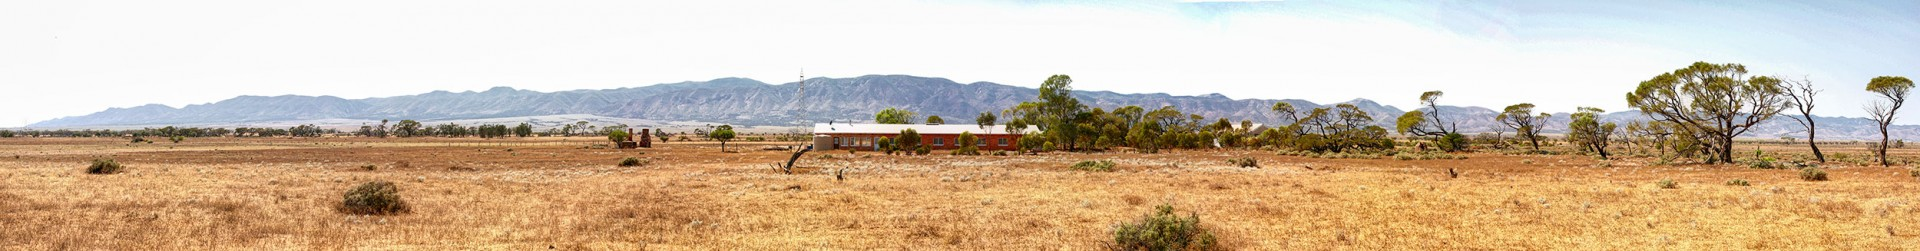 Shearers Quarters Panorama - photo by Tim Froling